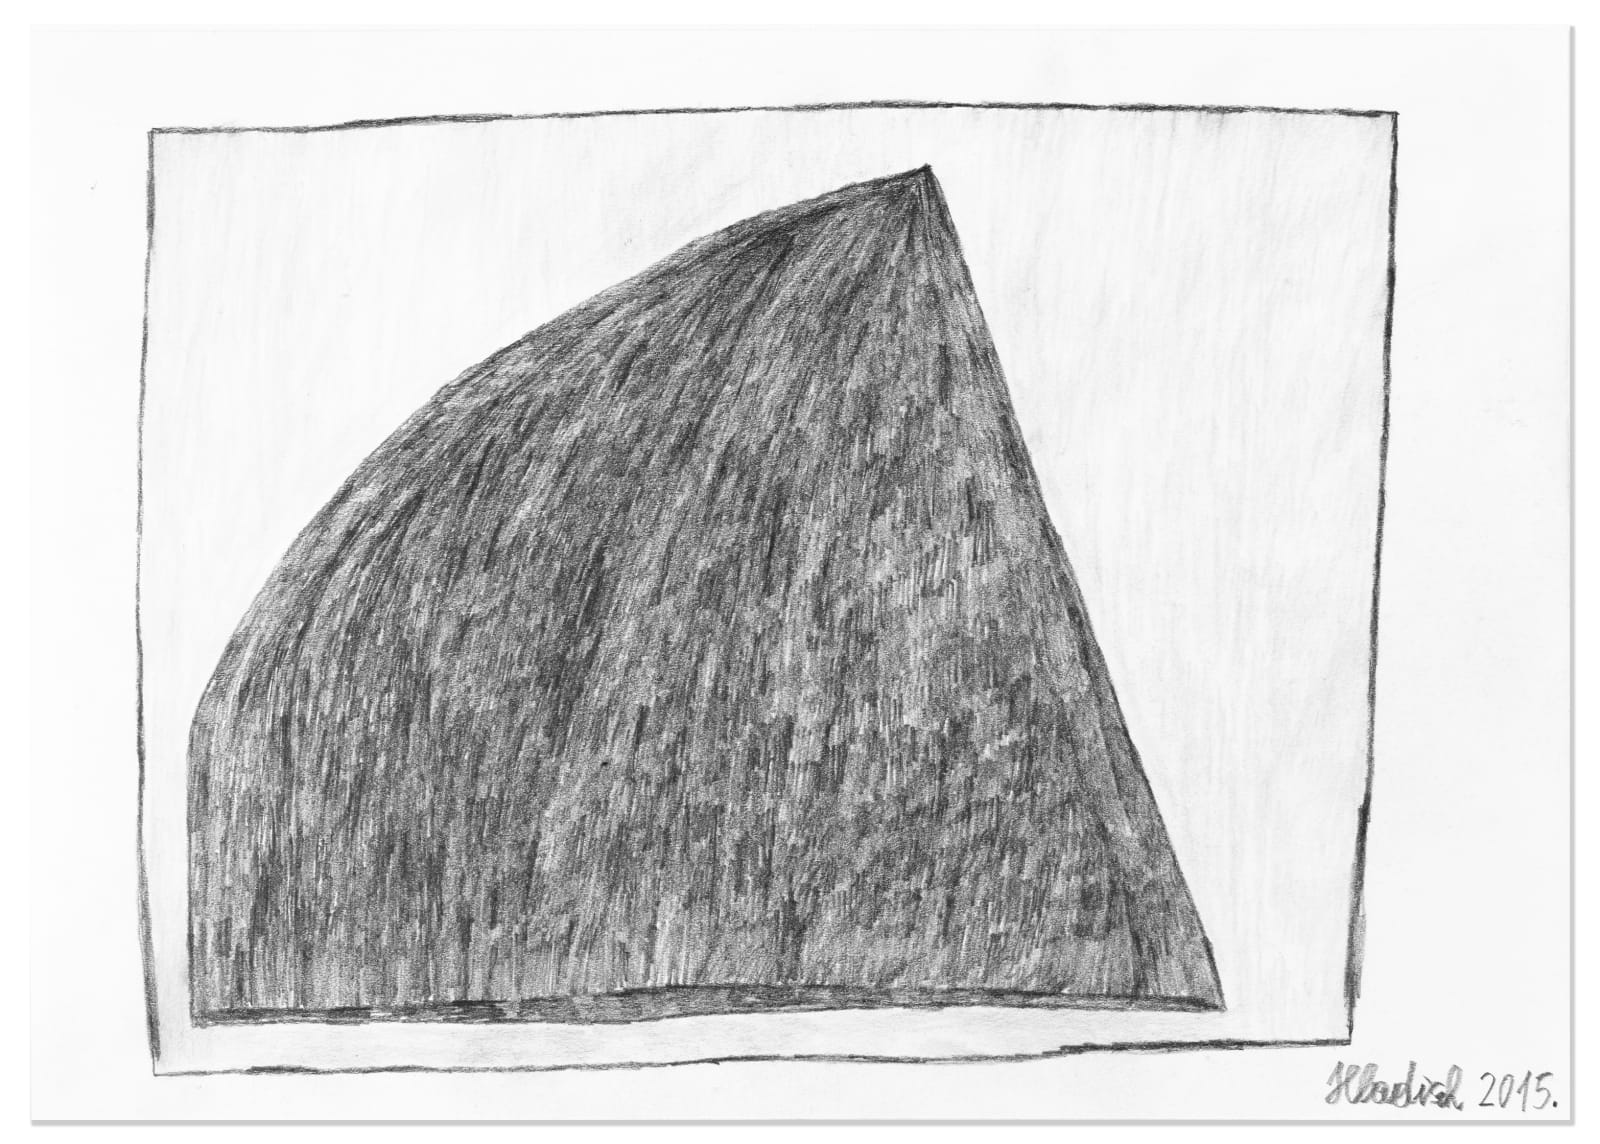 PYRAMID, 2015 Graphite and colored pencil on paper 8.2 x 11.7 in. (20.9 x 29.6 cm) HH 18 $2,650